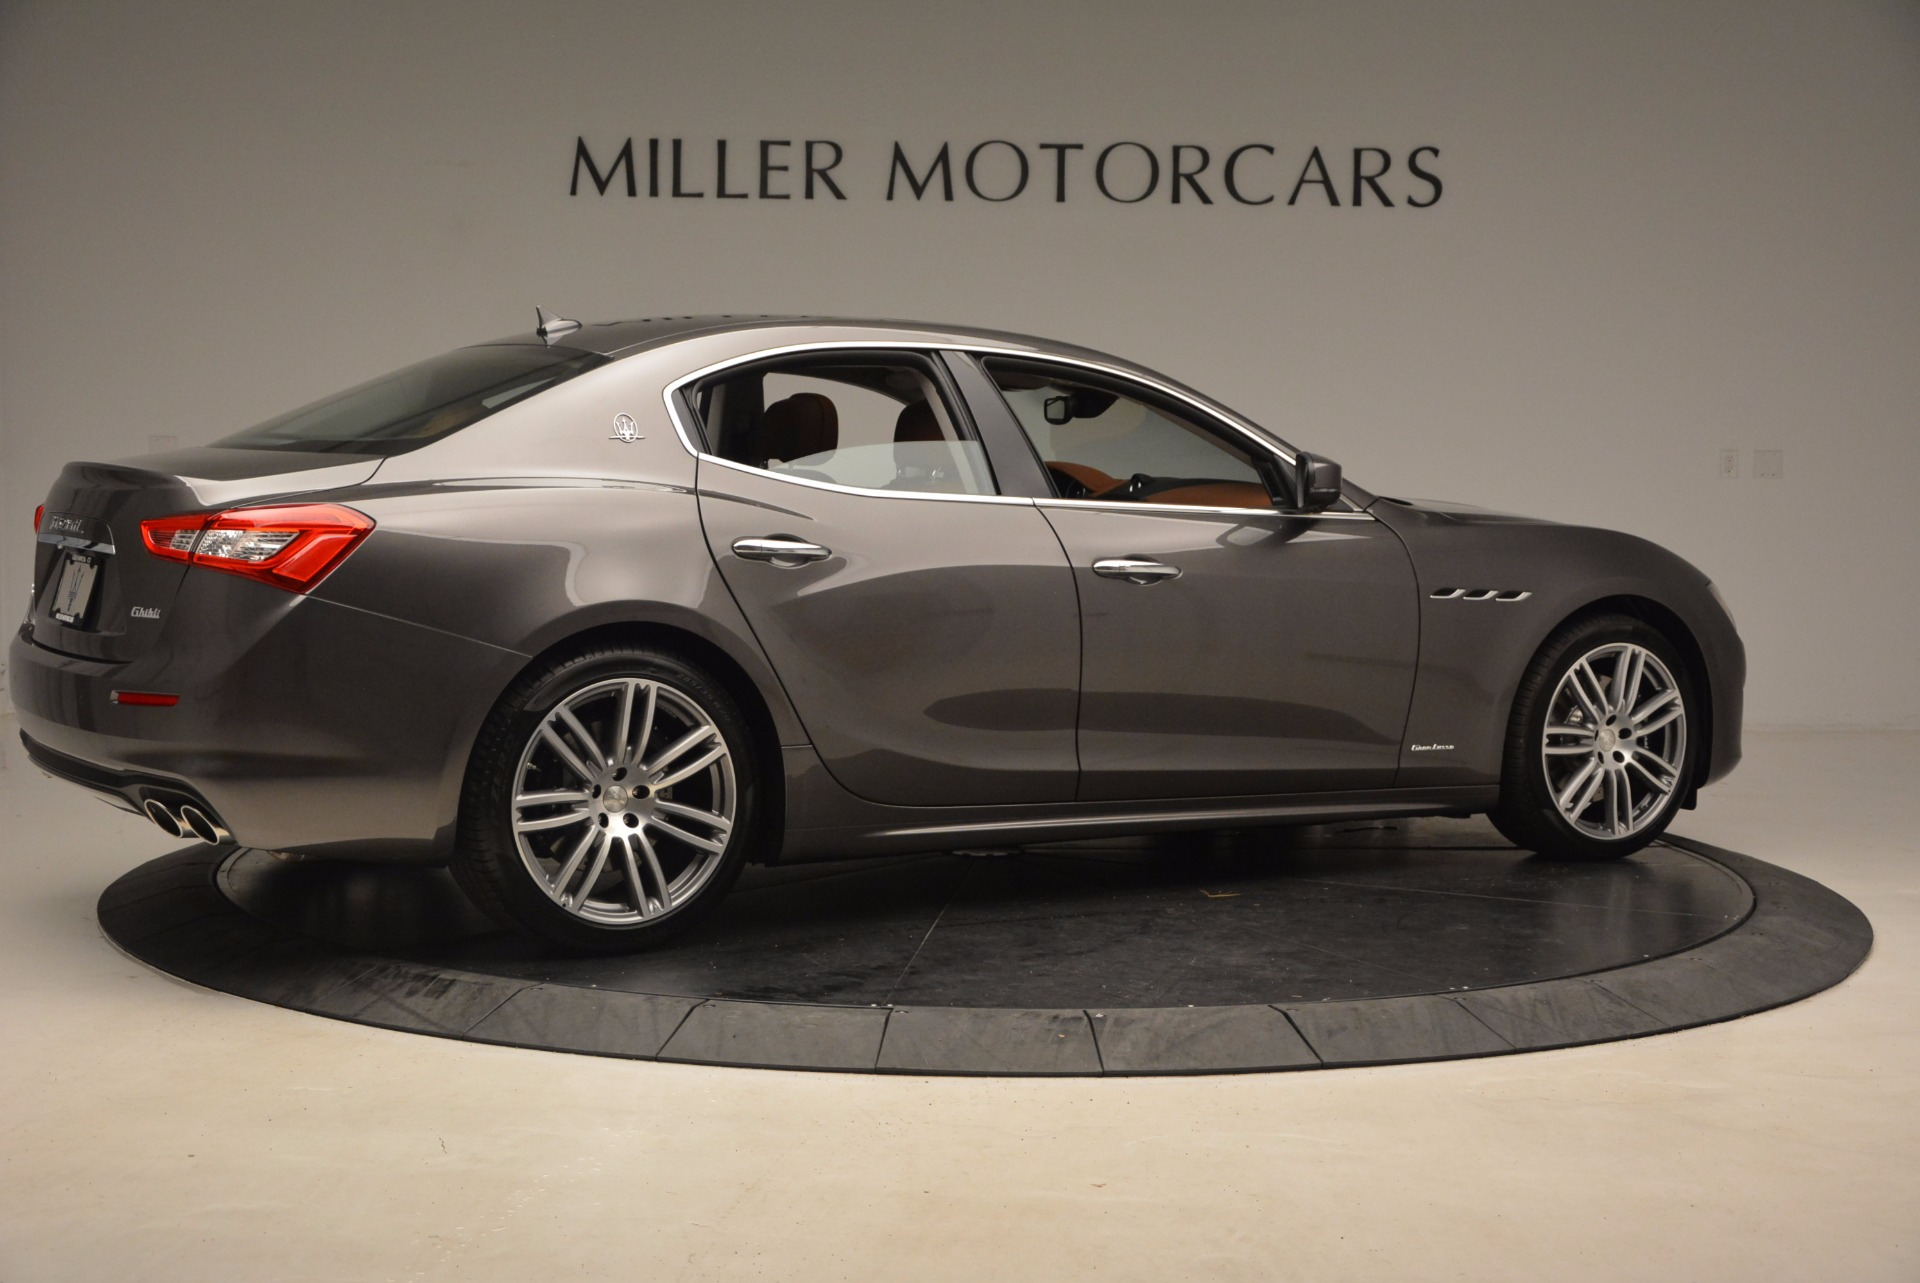 New 2018 Maserati Ghibli S Q4 GranLusso For Sale In Greenwich, CT 1896_p8